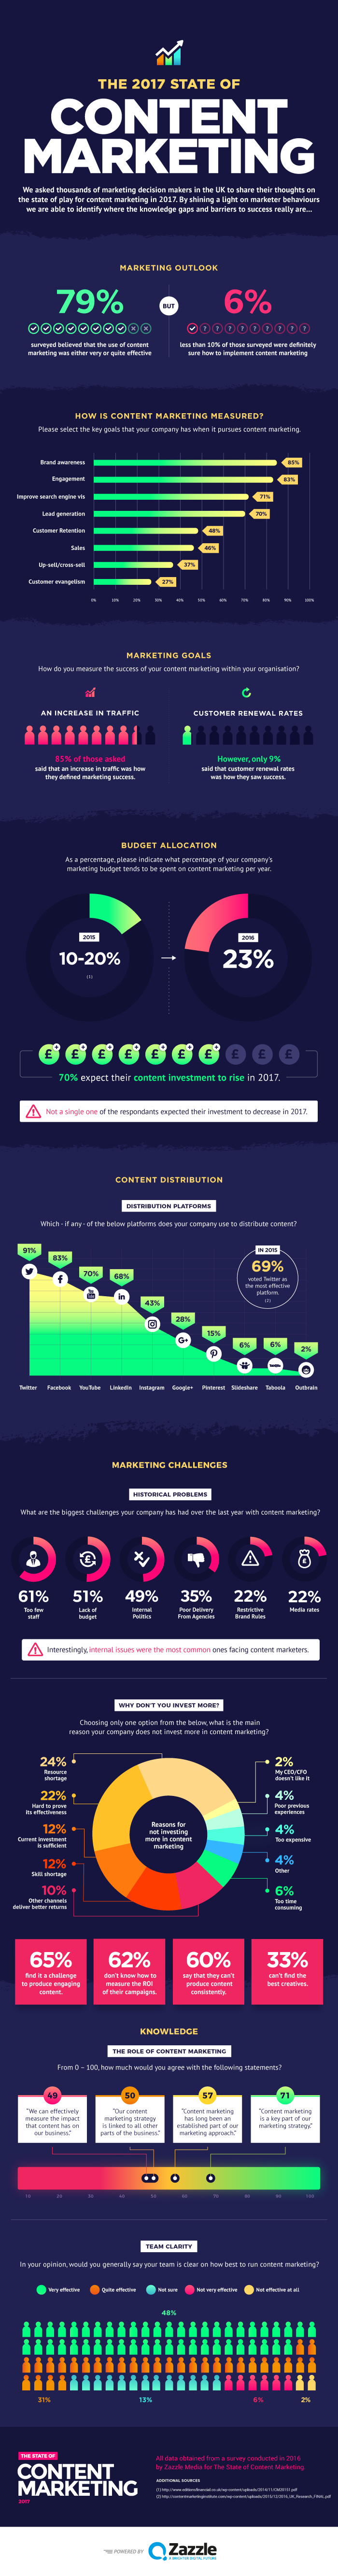 HUBSPOT-IG-STATE_OF_CONTENT_MARKETING_SURVEY.png